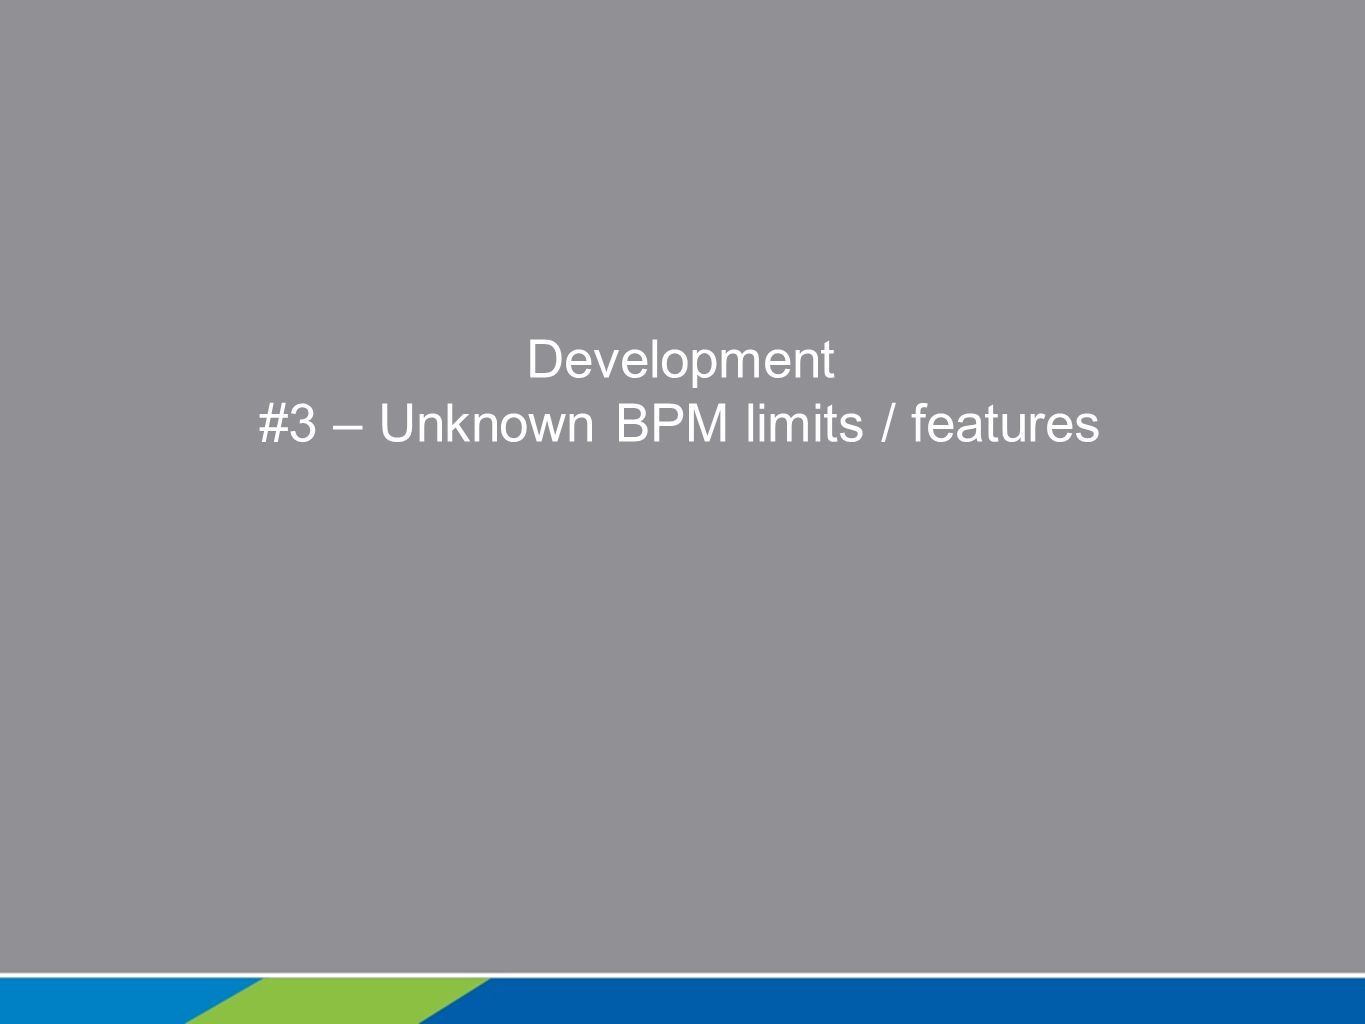 Development #3 – Unknown BPM limits / features